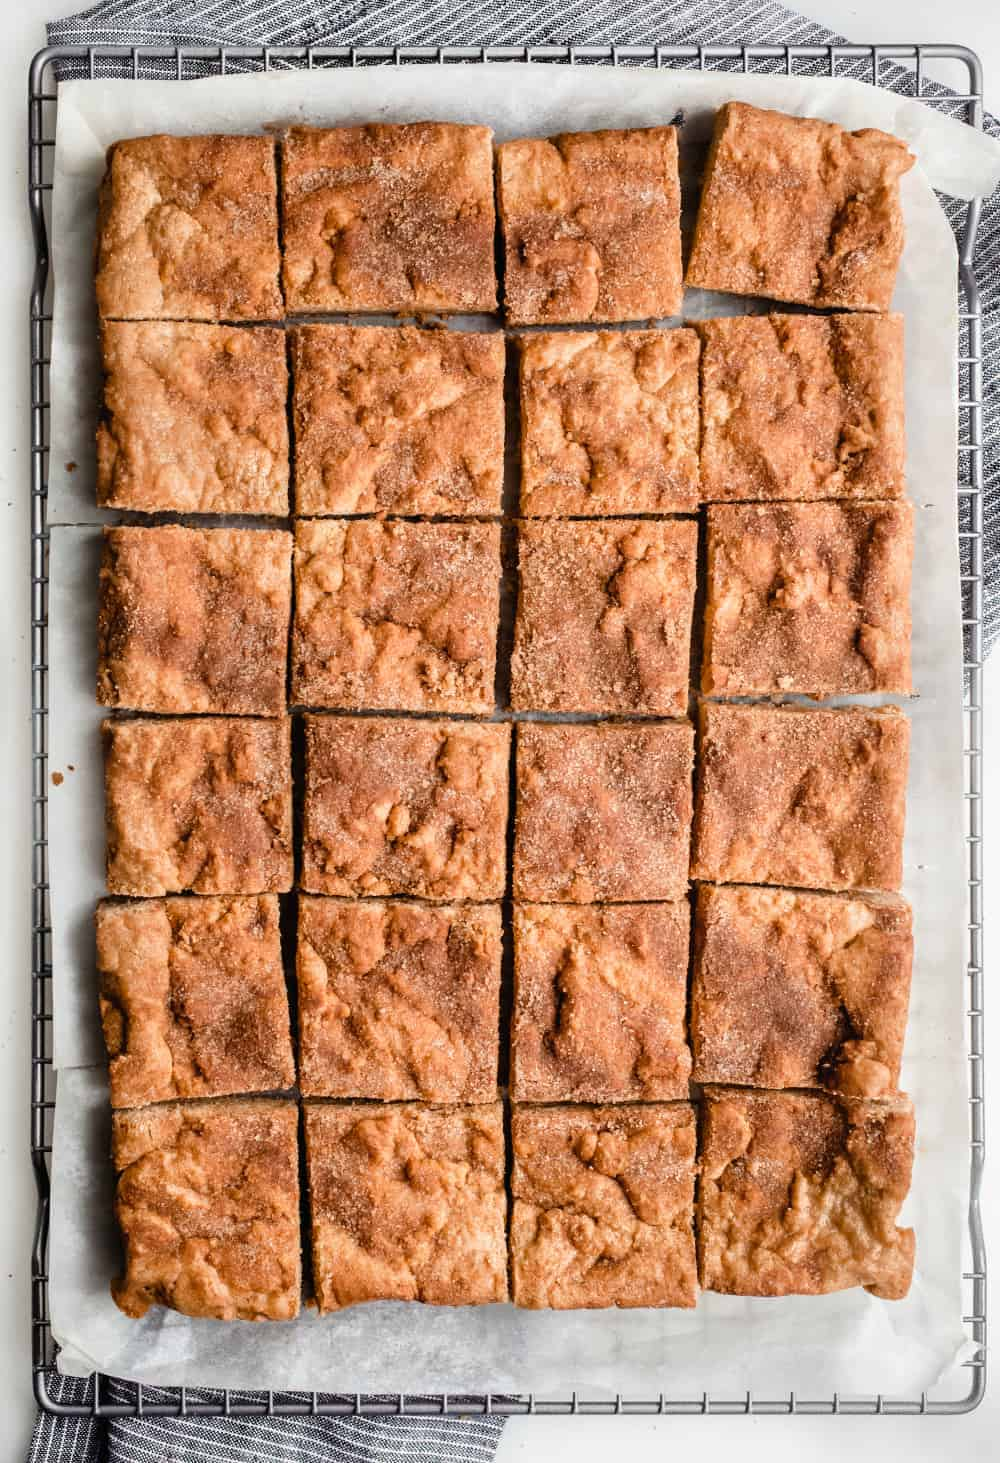 Baked and cut snickerdoodle blondies in a parchment-lined cooling rack